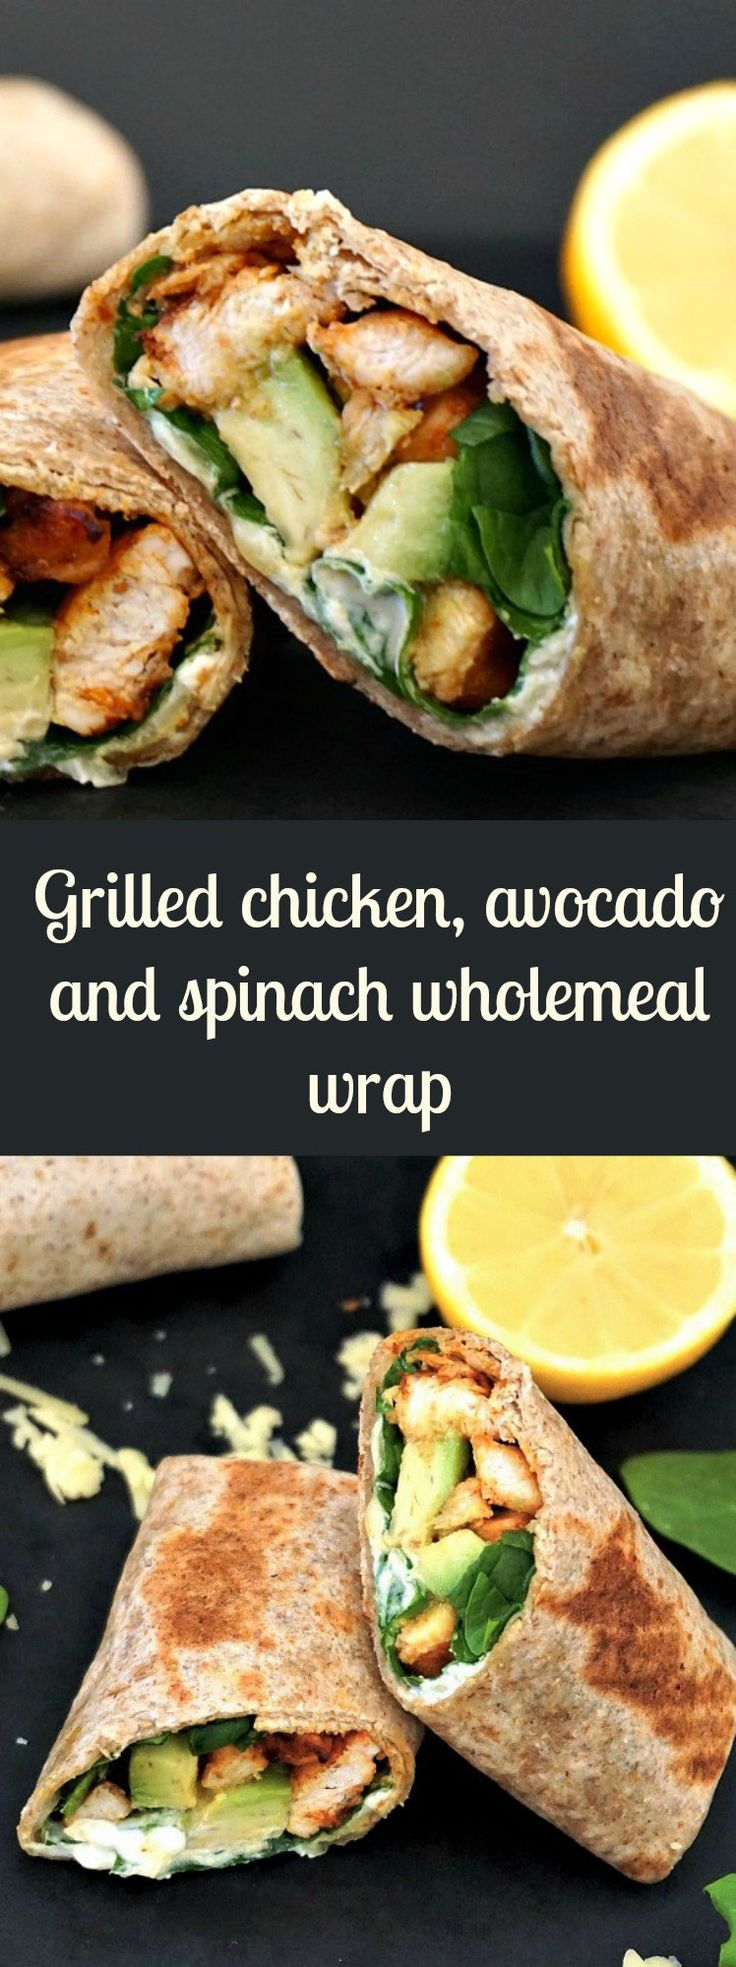 Grilled Chicken Avocado And Spinach Wholemeal Wrap